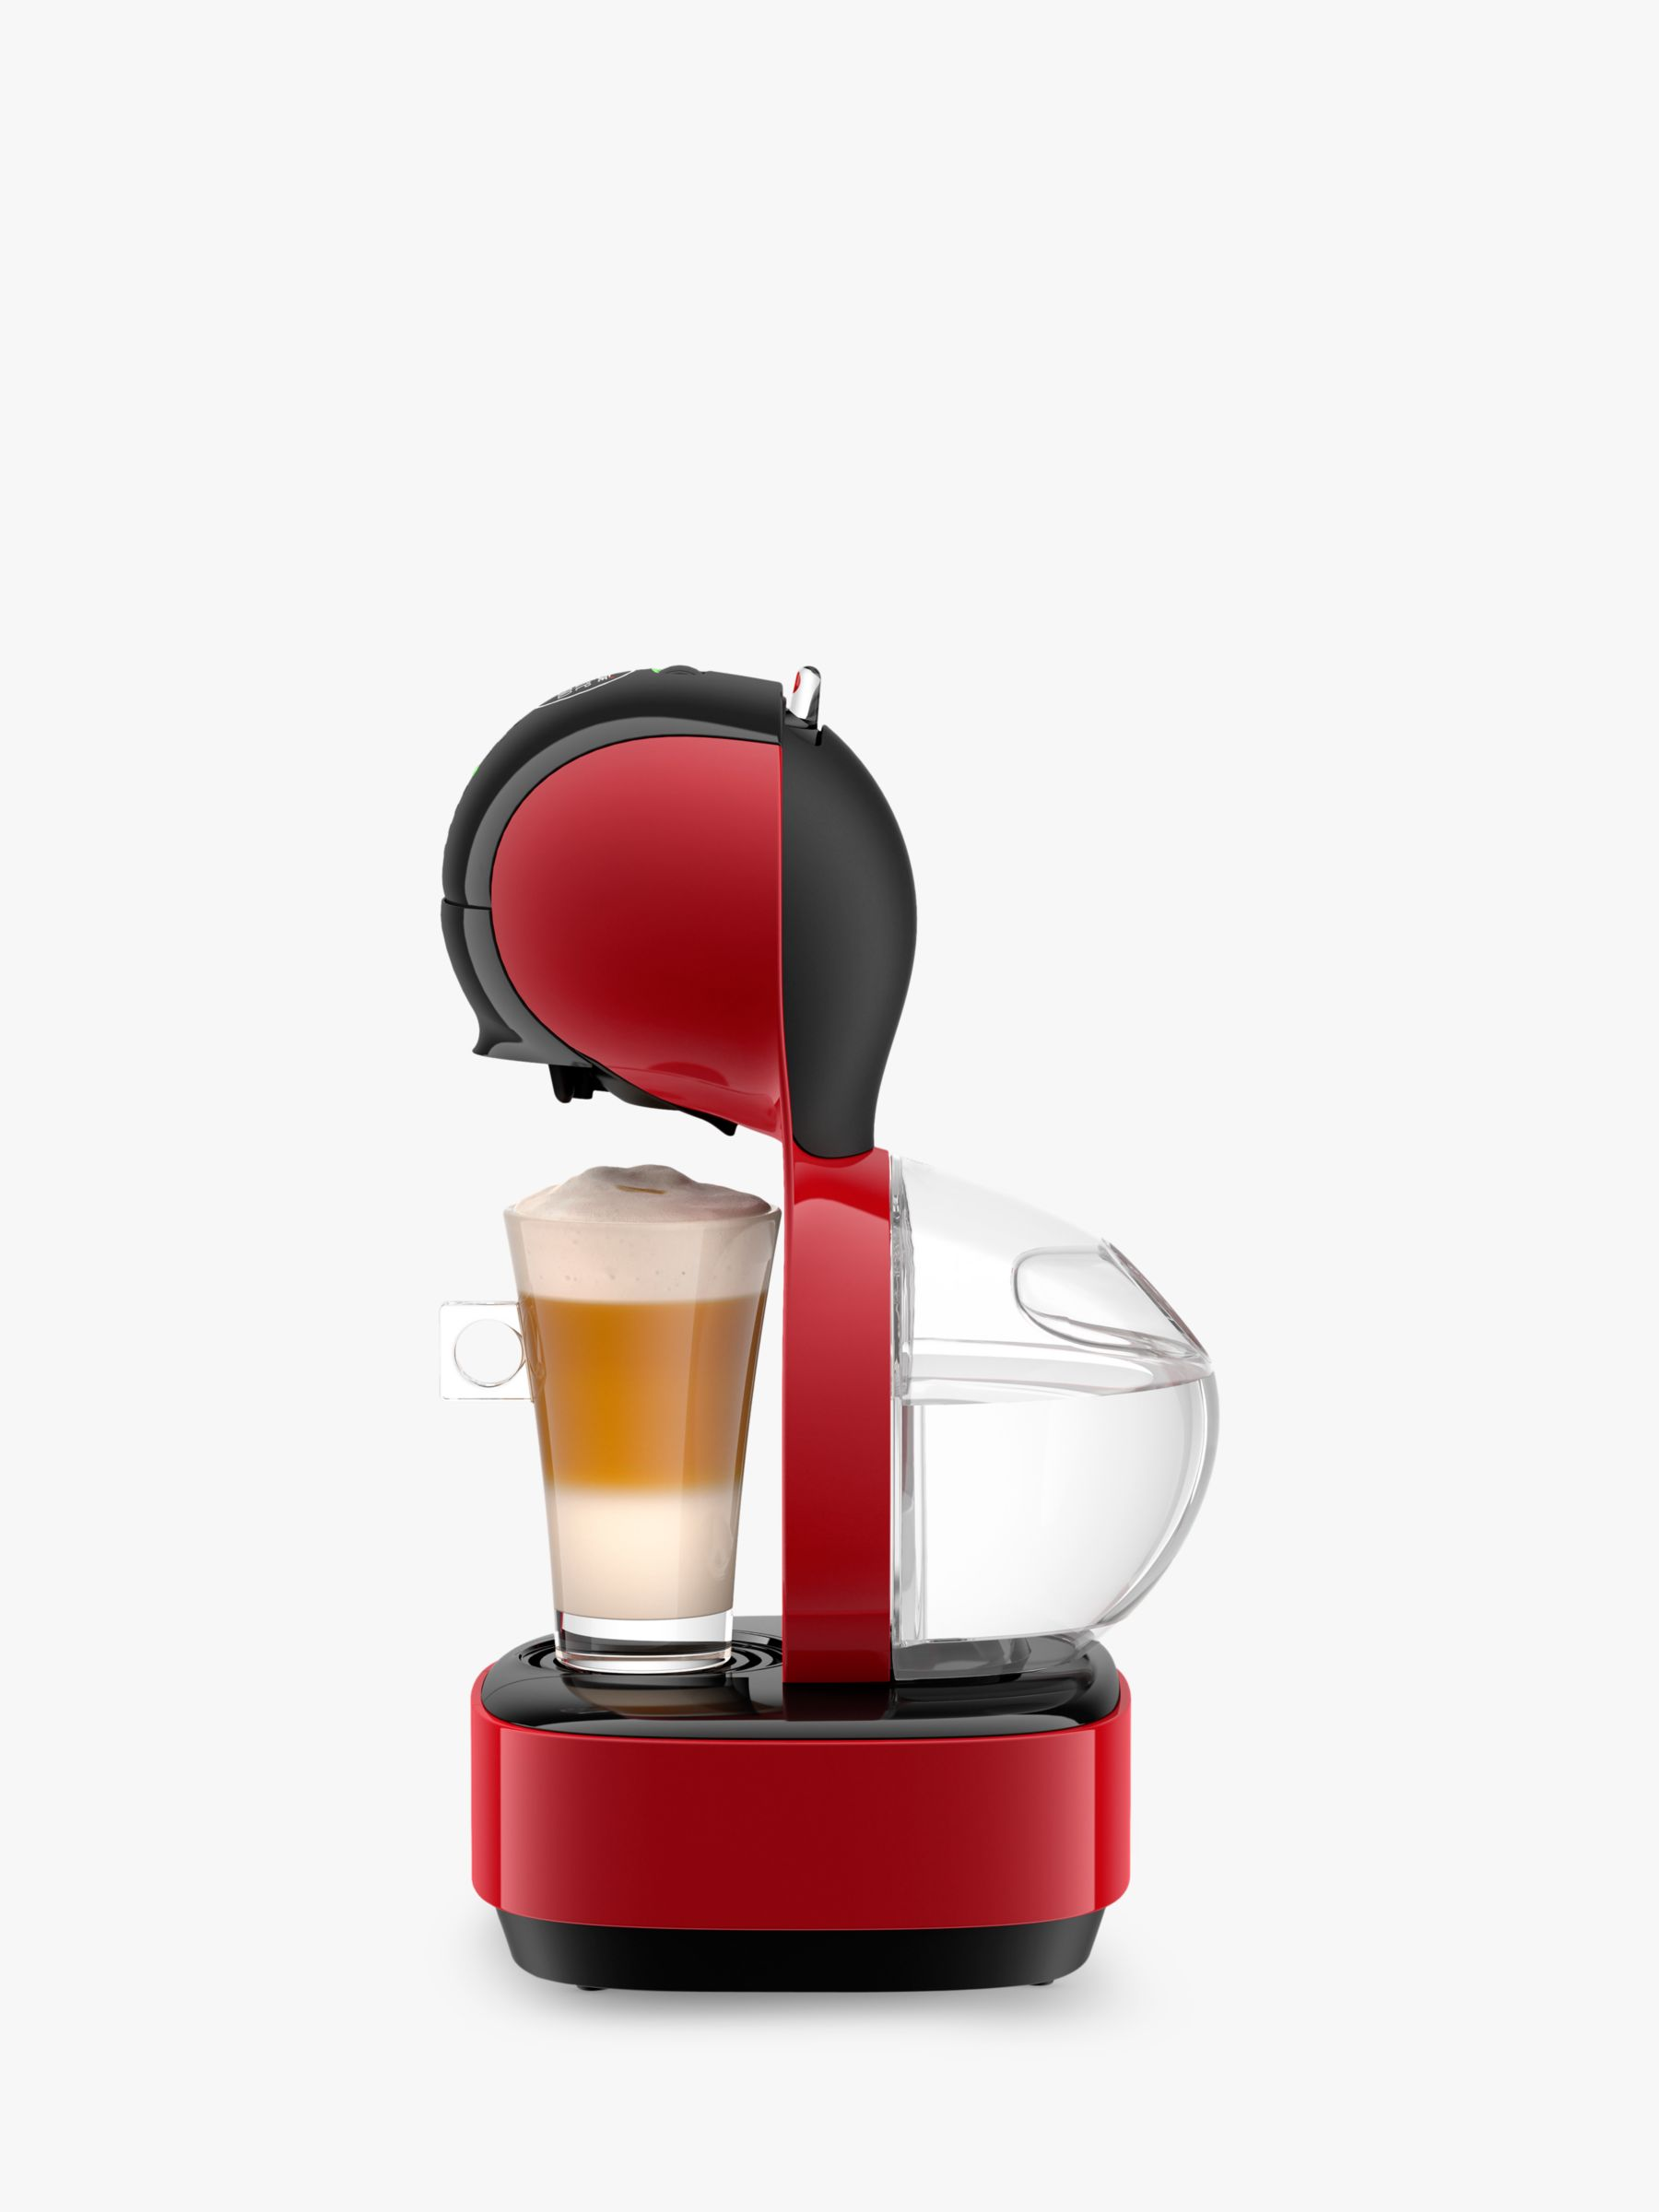 Krups Dolce Gusto Coffee Maker Reviews : Buy Dolce Gusto Lumio Coffee Machine by Krups, Red John Lewis